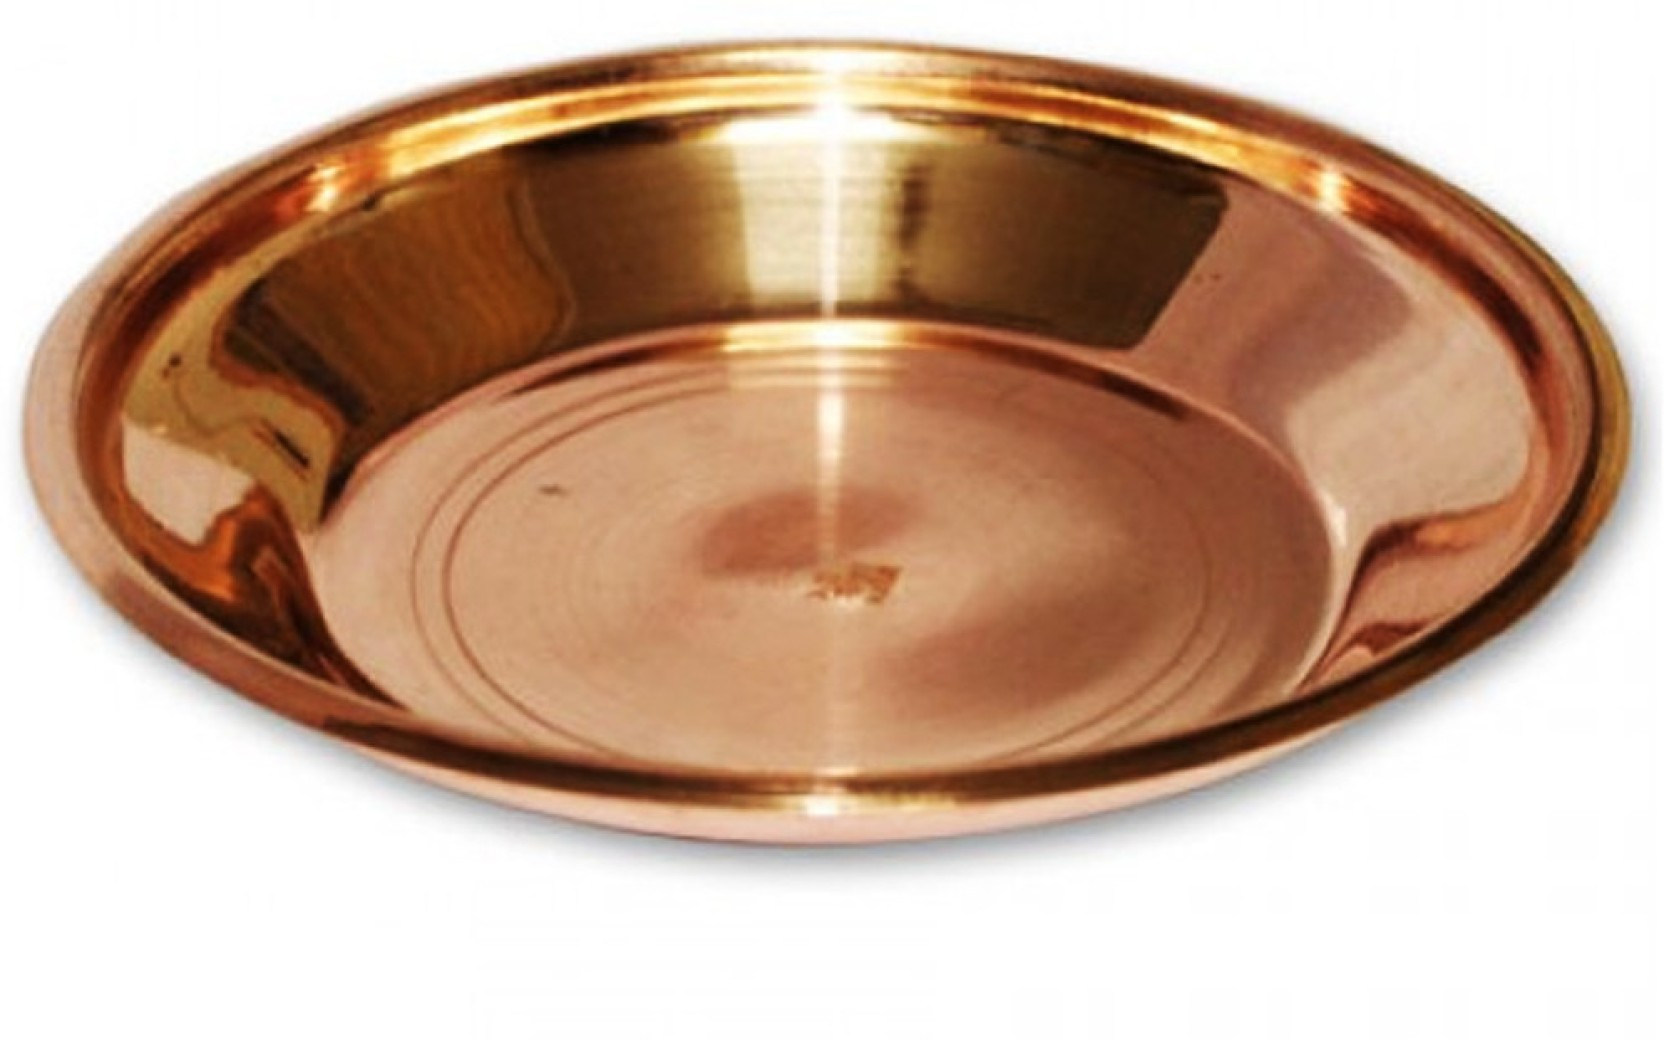 Home Decor Items In India Vedic Vaani Puja Plate Copper Pooja Amp Thali Set Price In